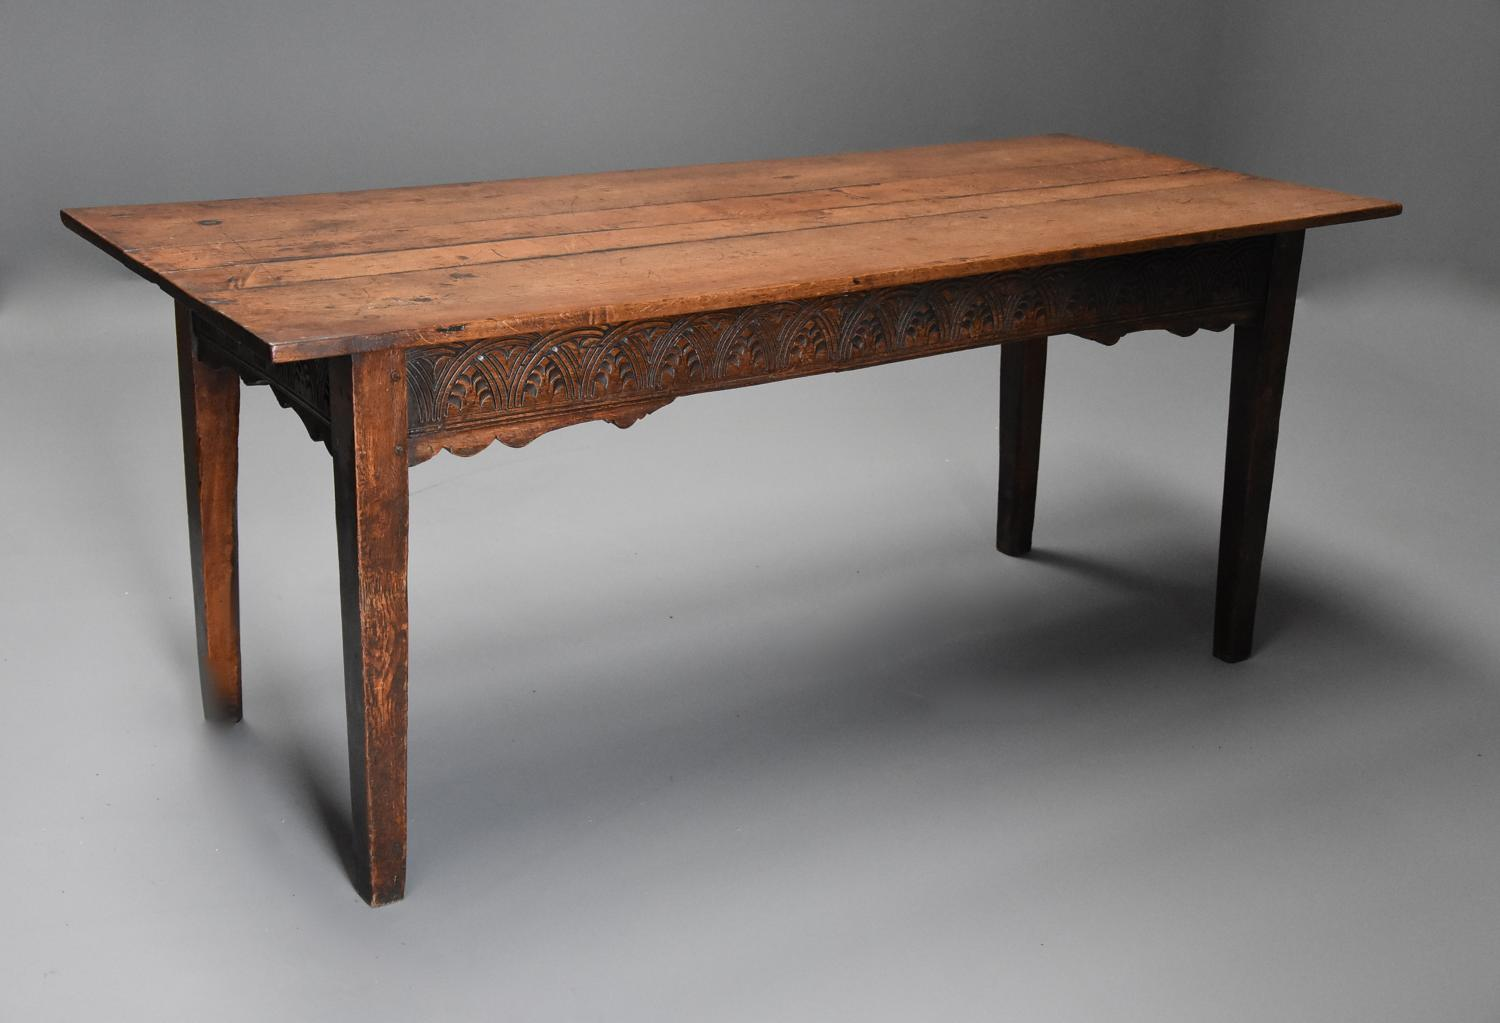 Late 18th century and earlier oak farmhouse table of superb patina